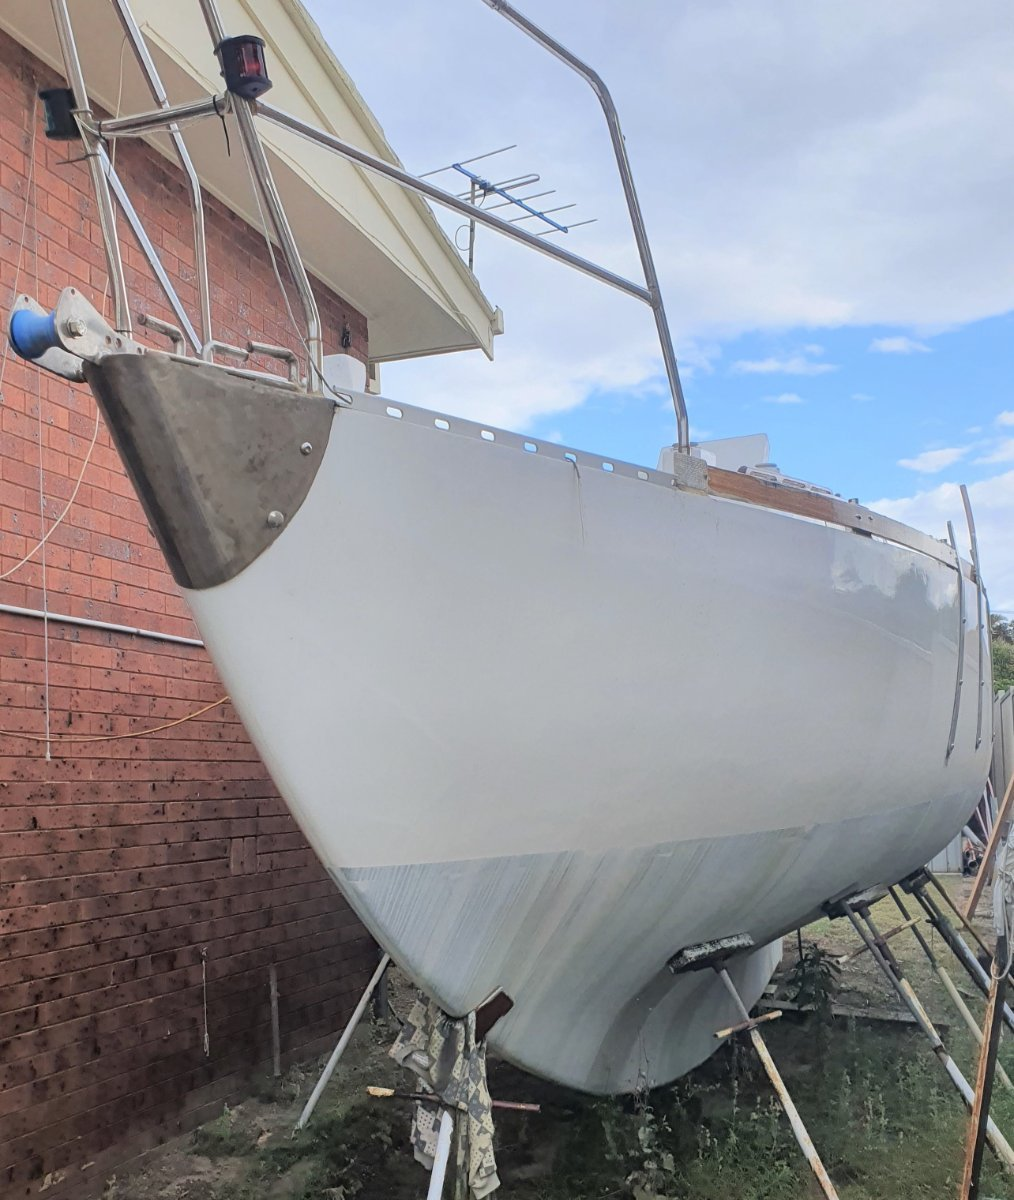 Wilf OKell Kitty near completed Ferro - never launched